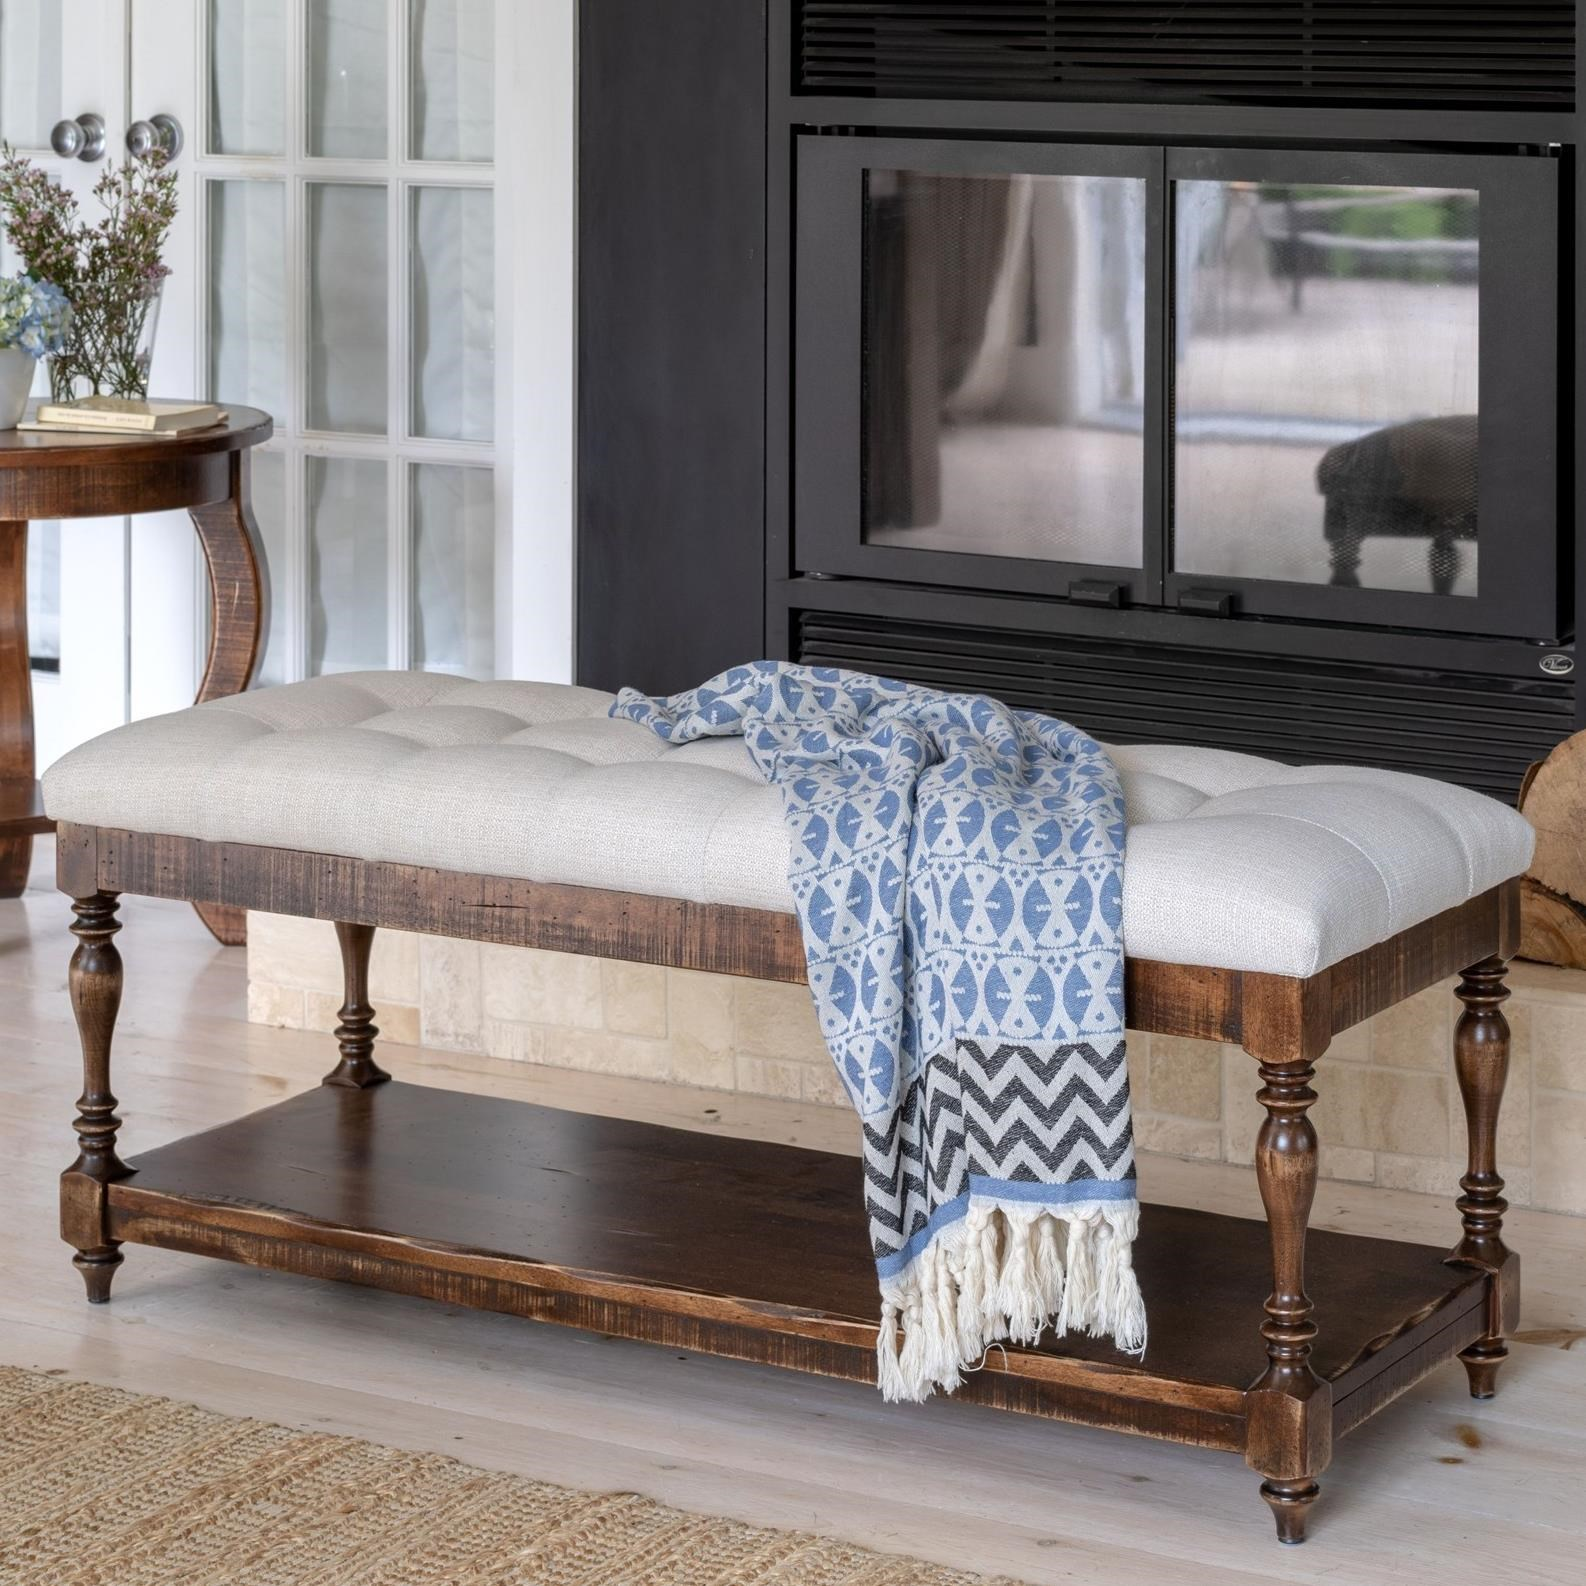 Customizable Upholstered Bench